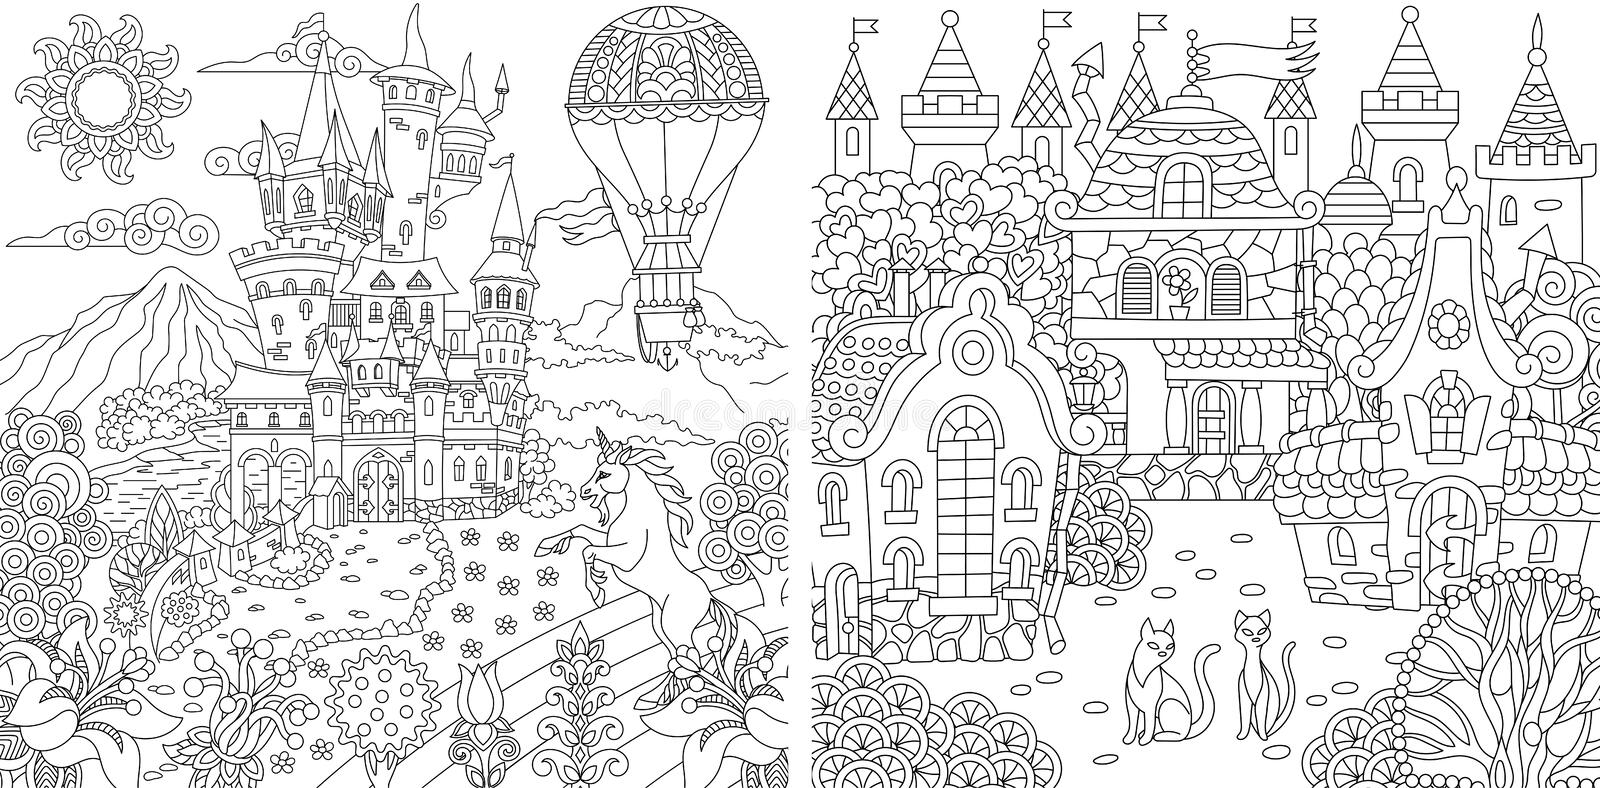 Coloring Pages. Coloring Book for adults. Colouring pictures with fantasy castles and houses drawn in zentangle style. Vector royalty free illustration